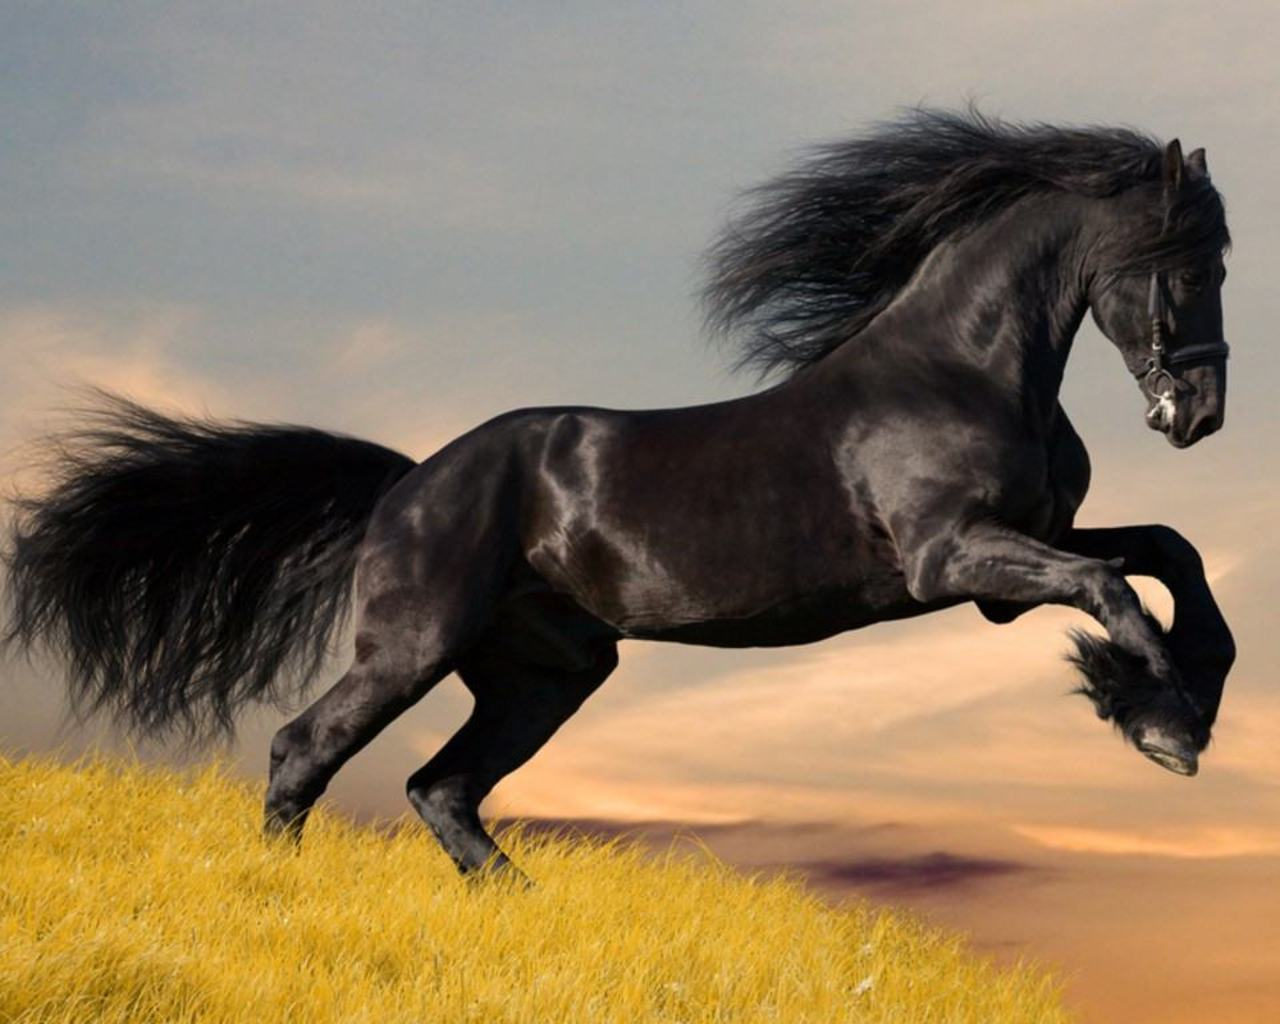 Amazing Wallpaper Horse Dark Brown - tumblr_static_9qxoiubodasc8cs80c8gw4c4k  Pictures_429177.jpg